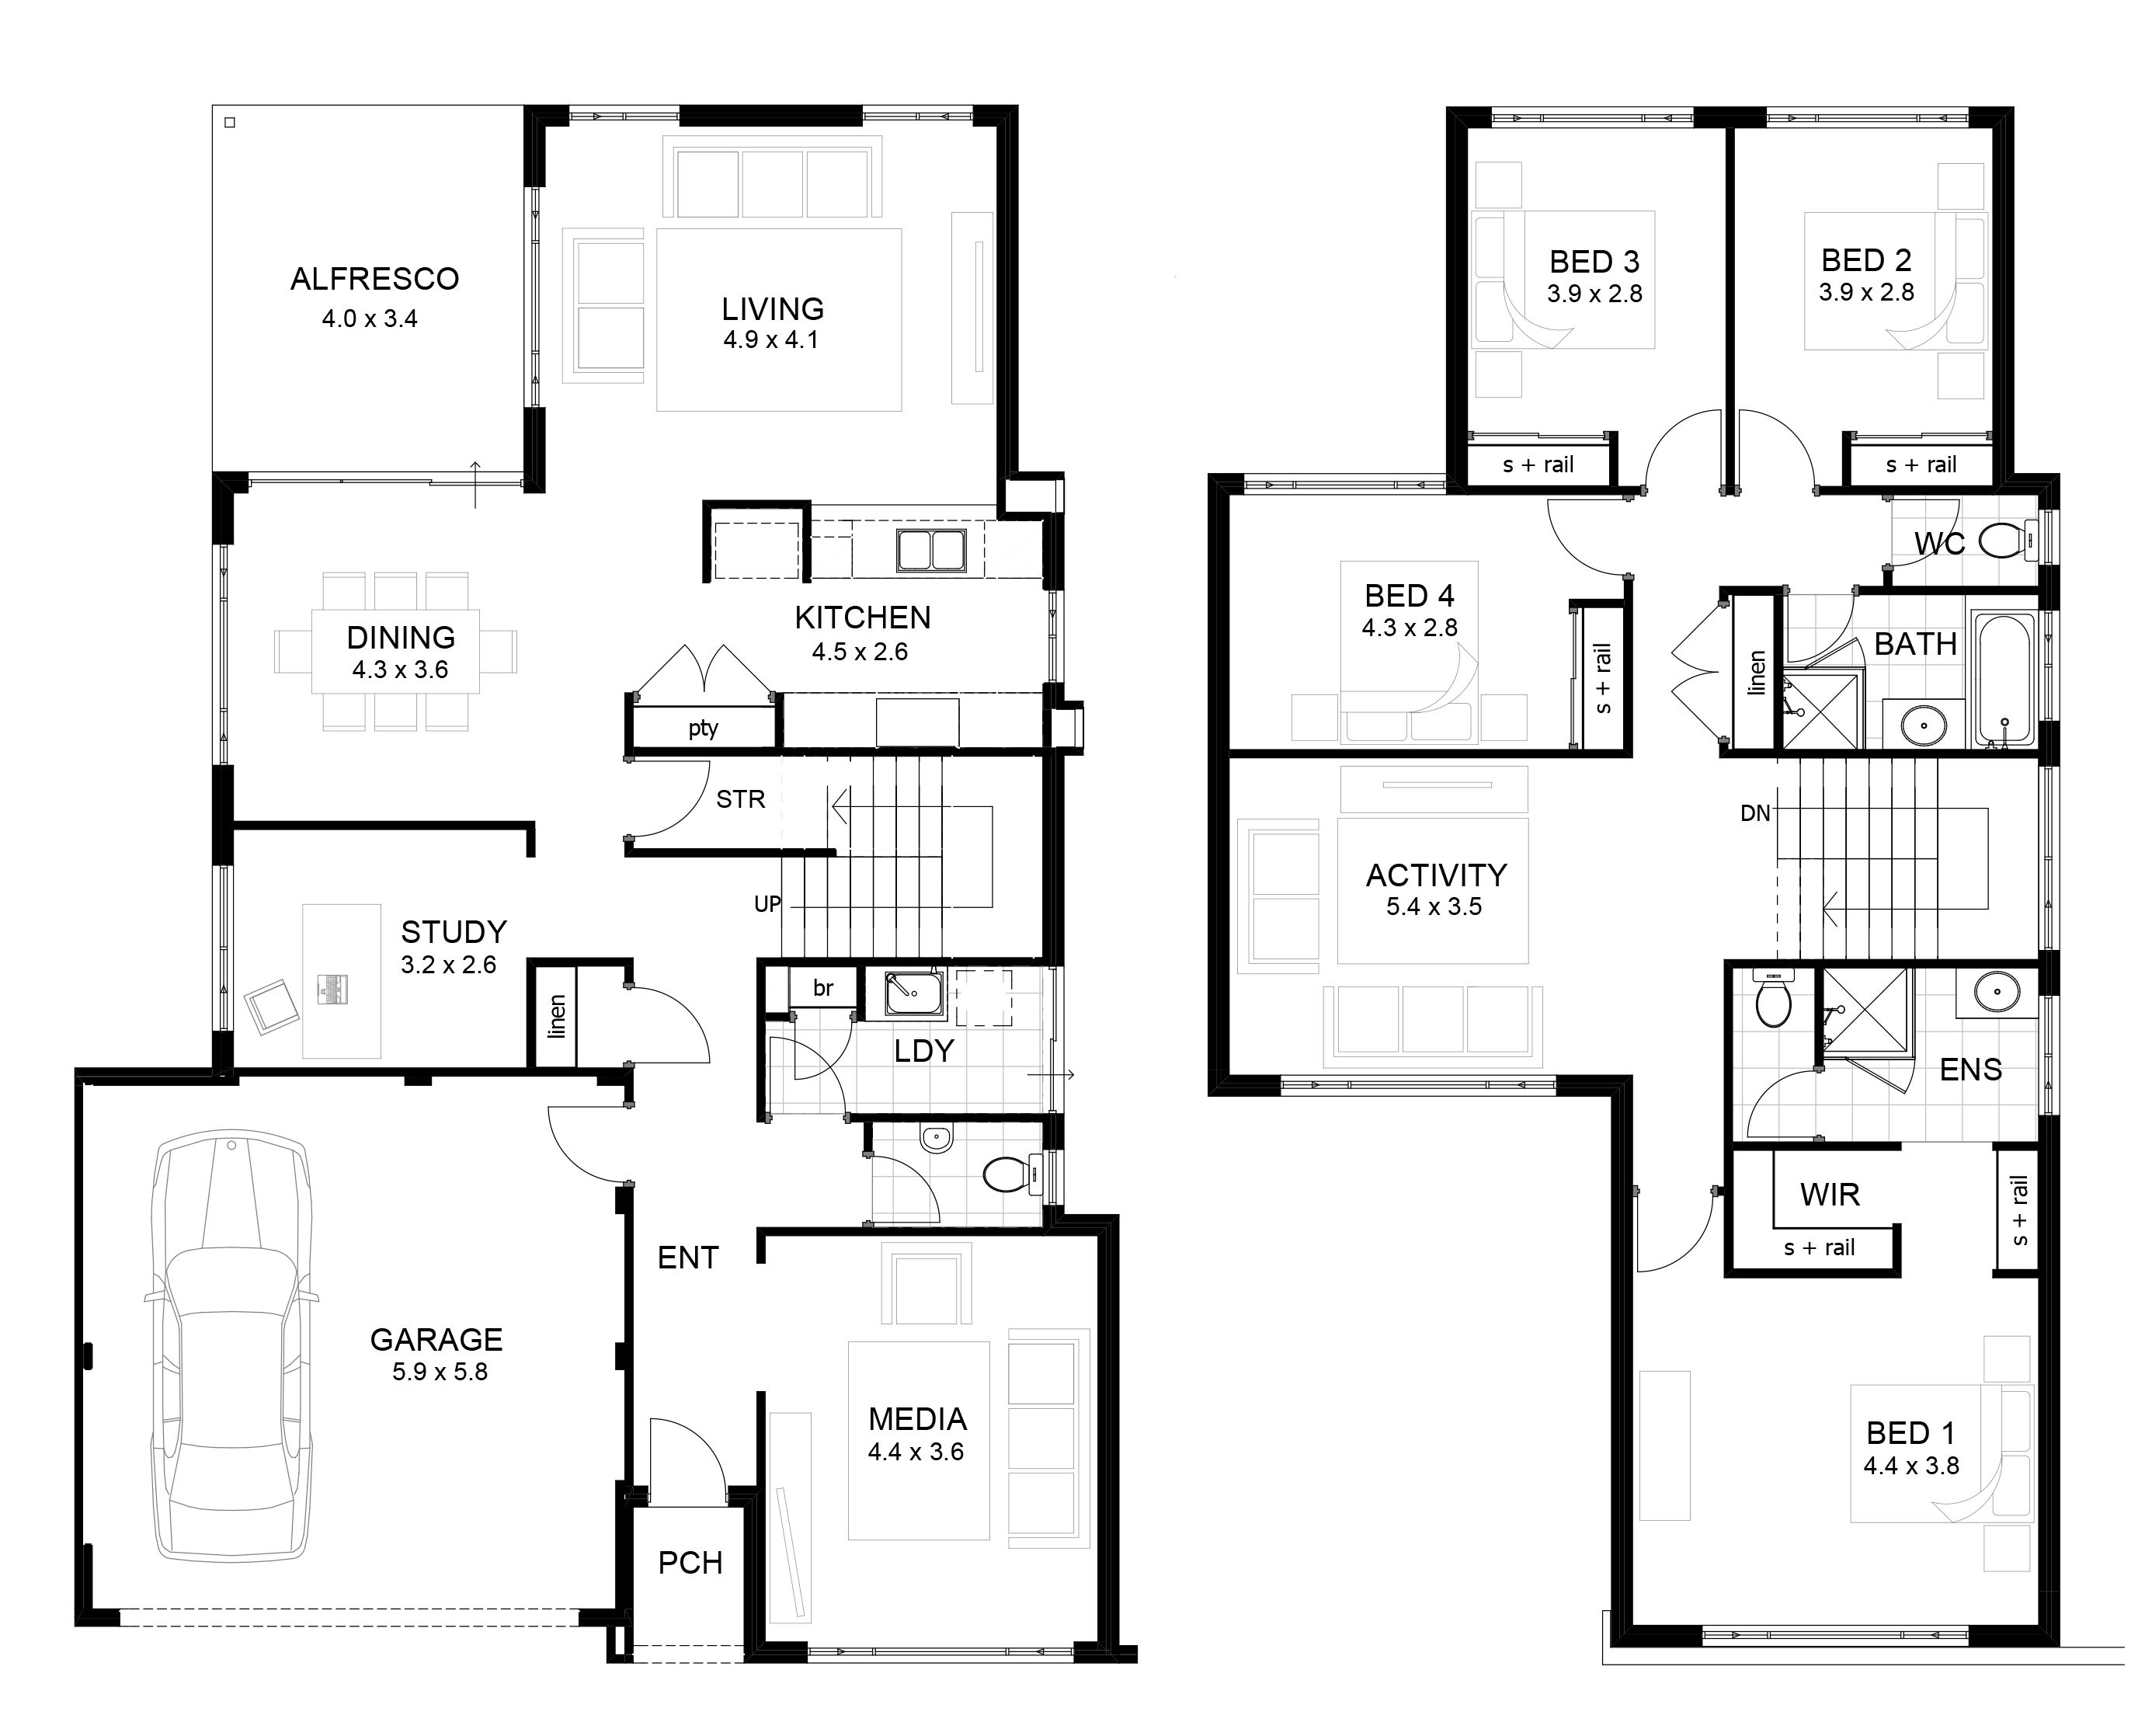 Double Storey House Plans In South Africa Apartmentsdesign Bedroomdesign Falsecailin Double Storey House Plans House Plans Australia Two Storey House Plans